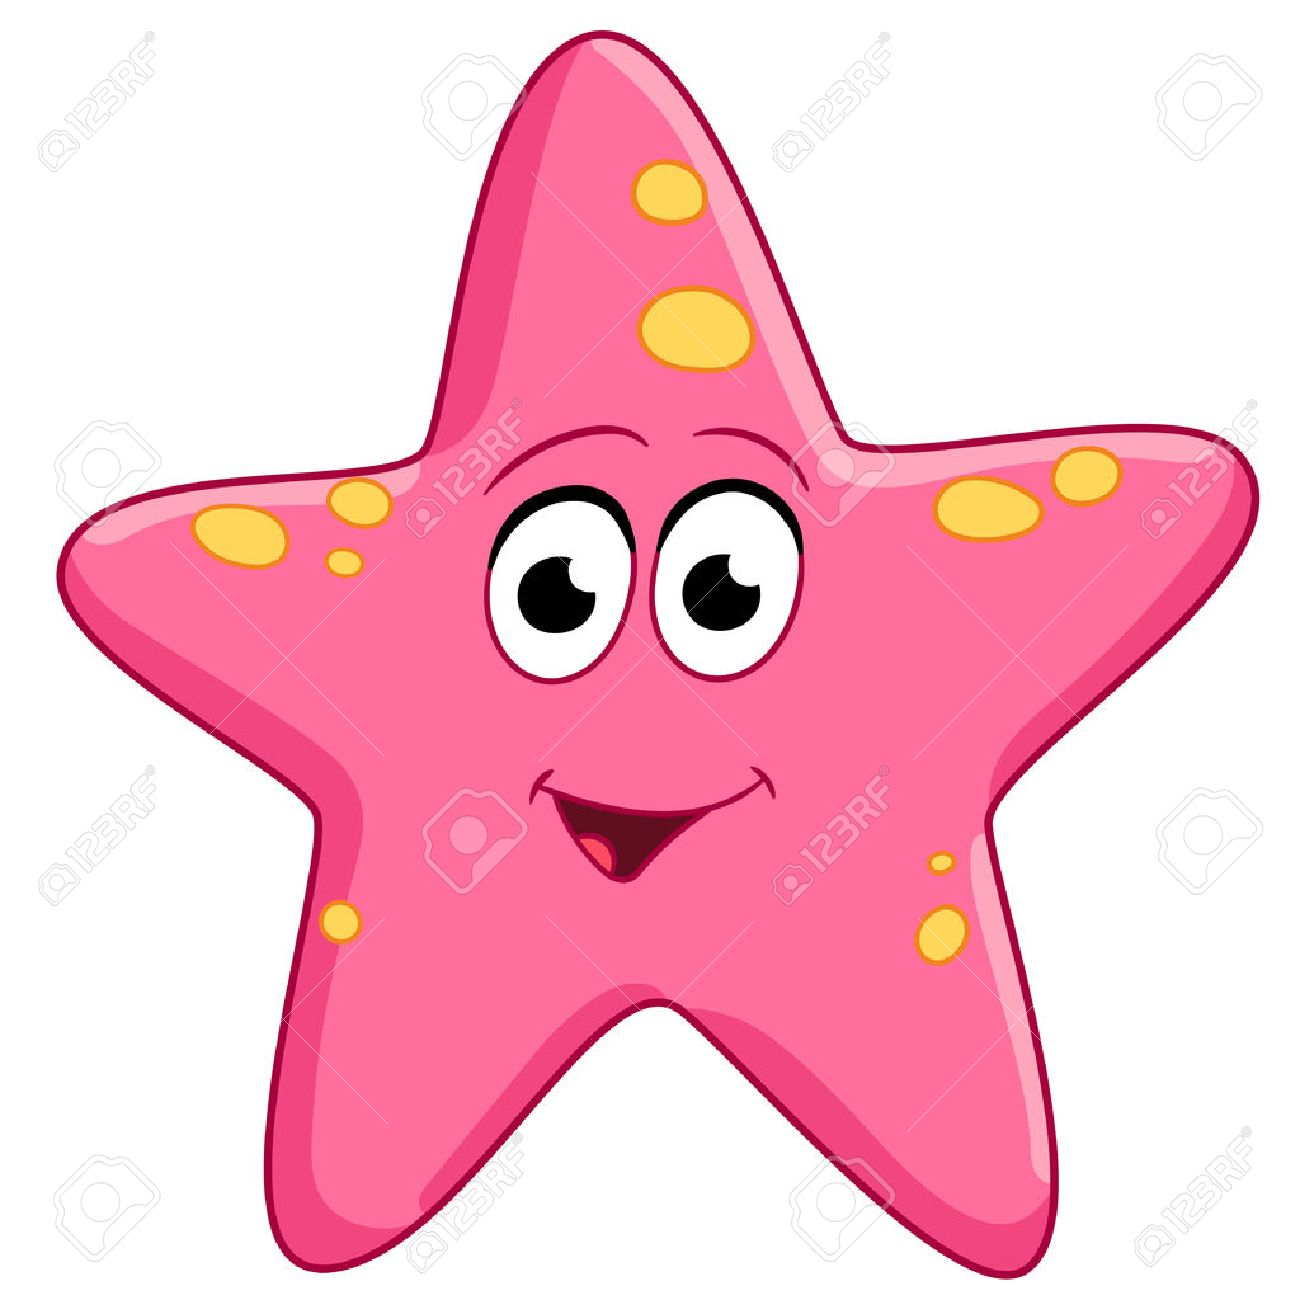 Spotted Pink Starfish Is Smiling Royalty Free Cliparts, Vectors ... for Pink Starfish Clipart  535wja